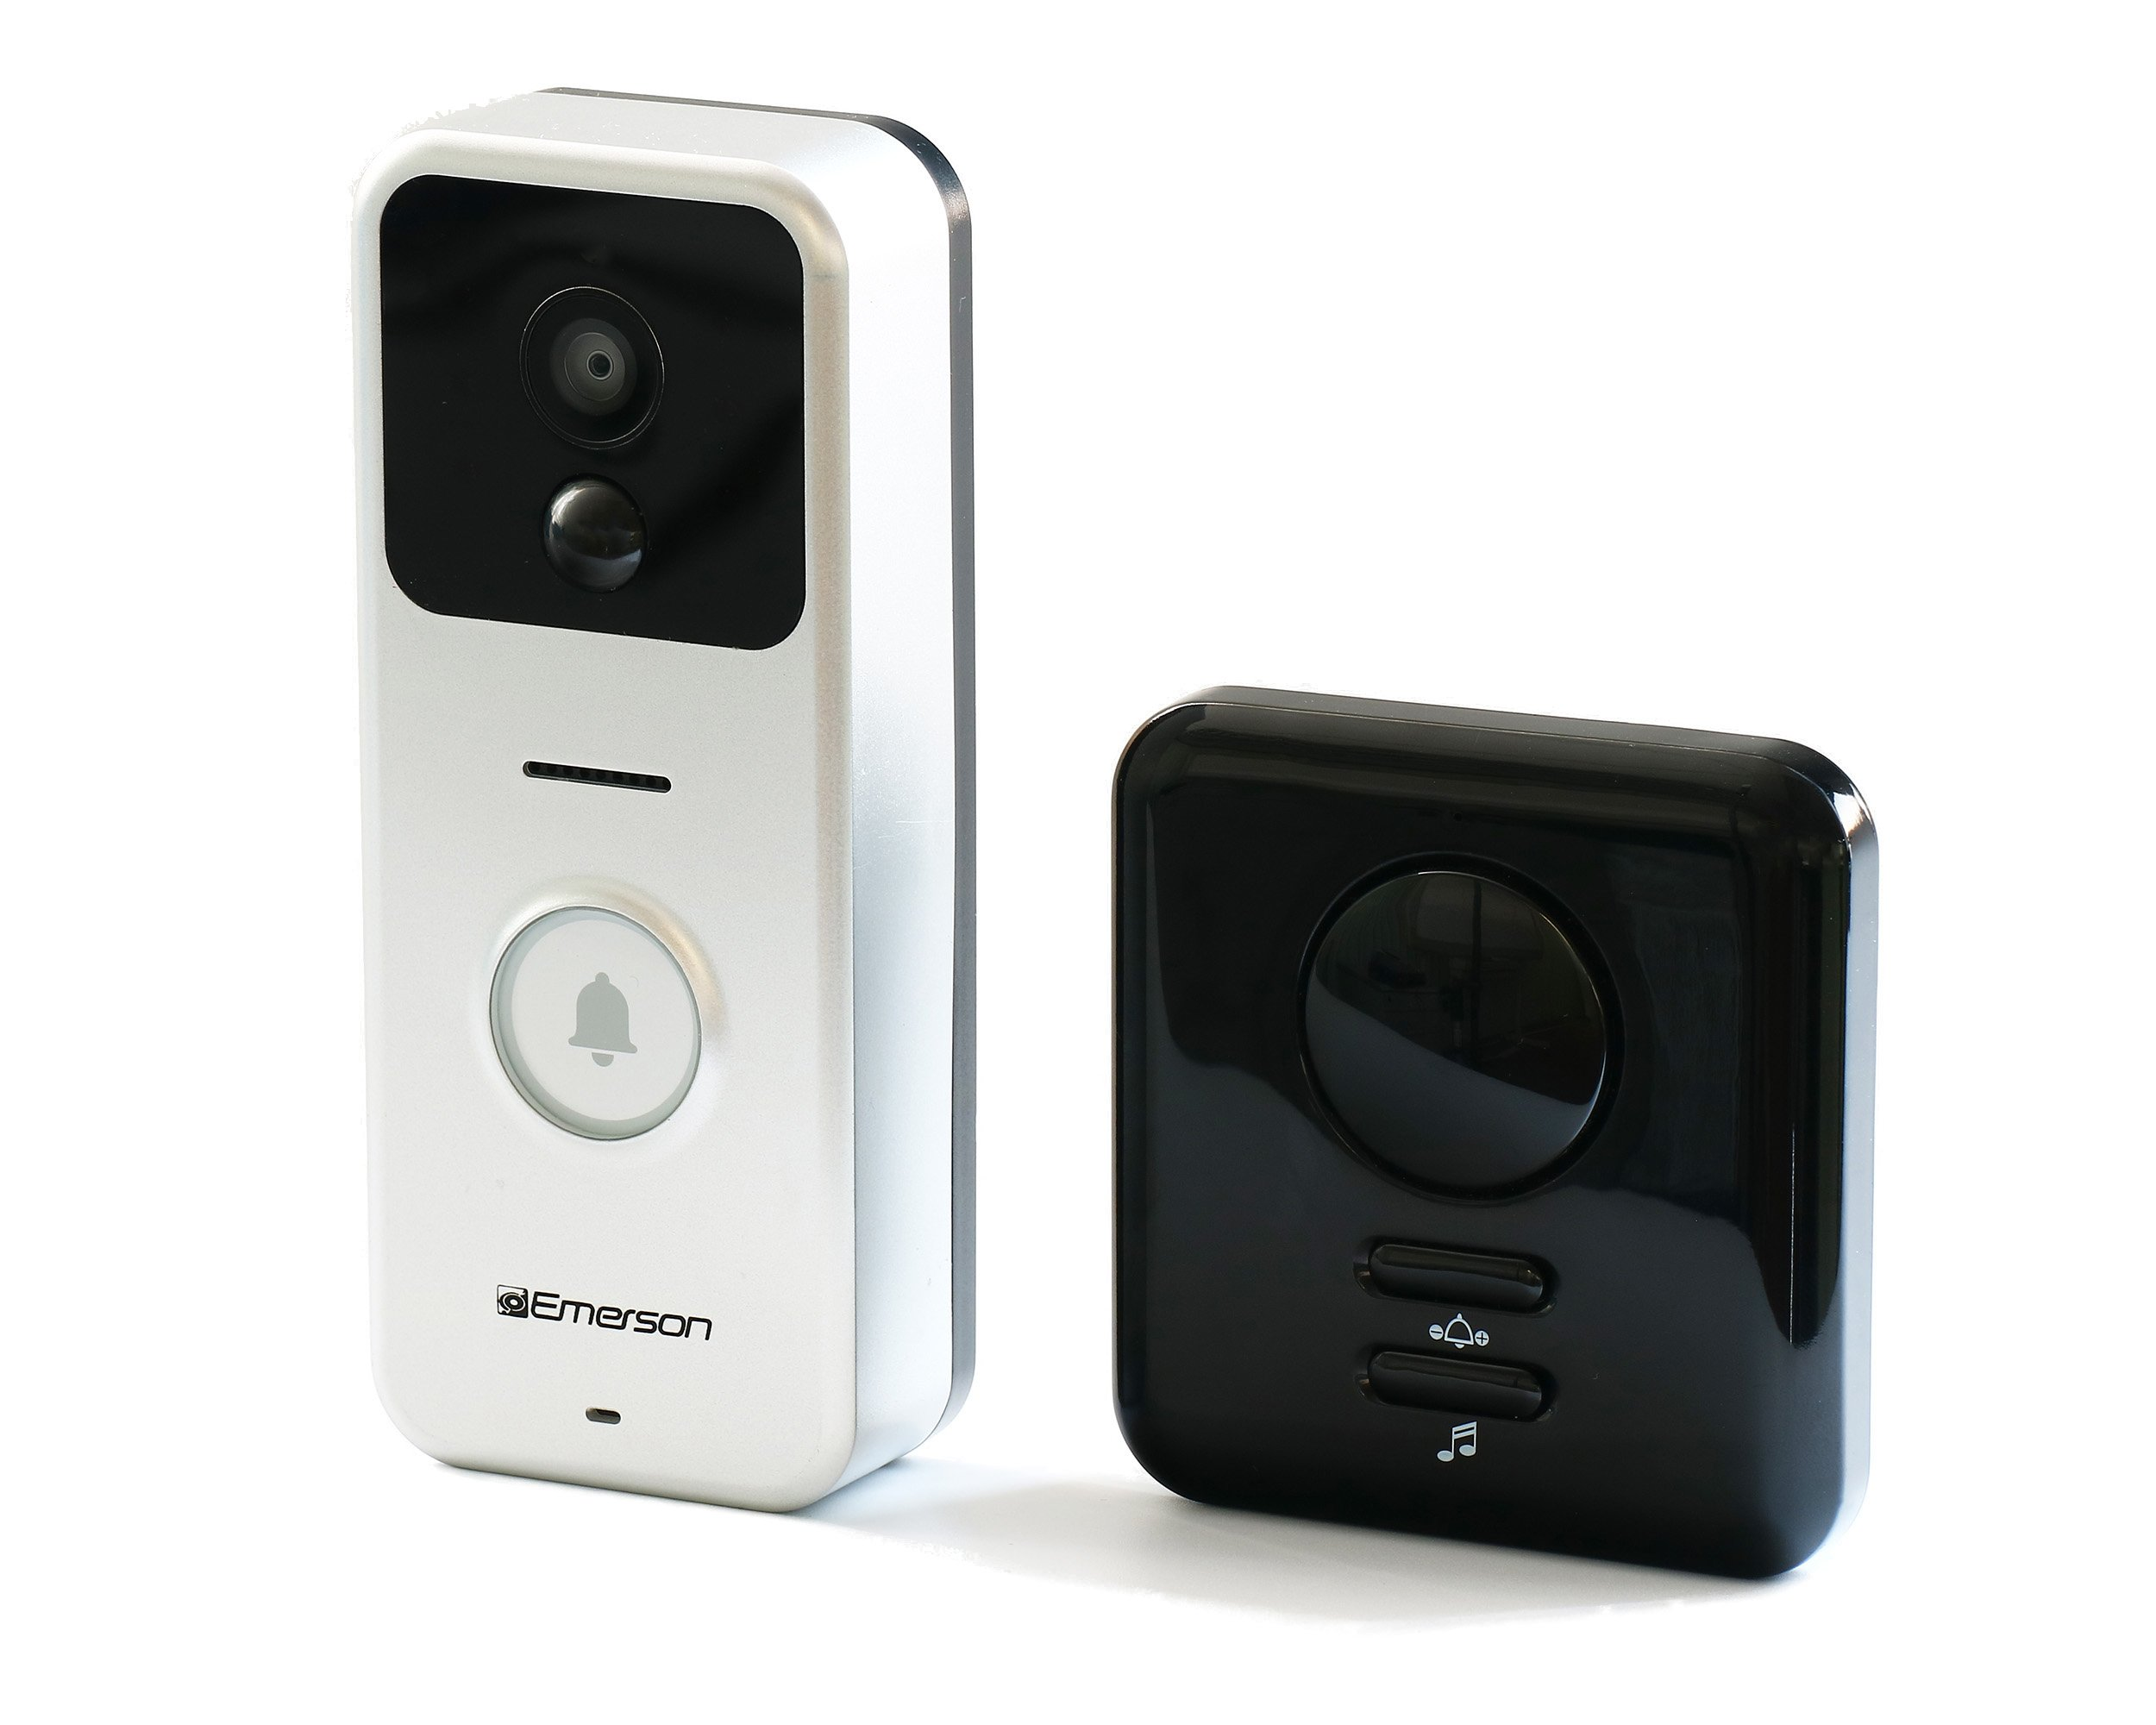 Emerson ER107001 Wifi Enabled Smart Video Doorbell with 2 Way Talk, Night Vision, Motion Activated Alerts